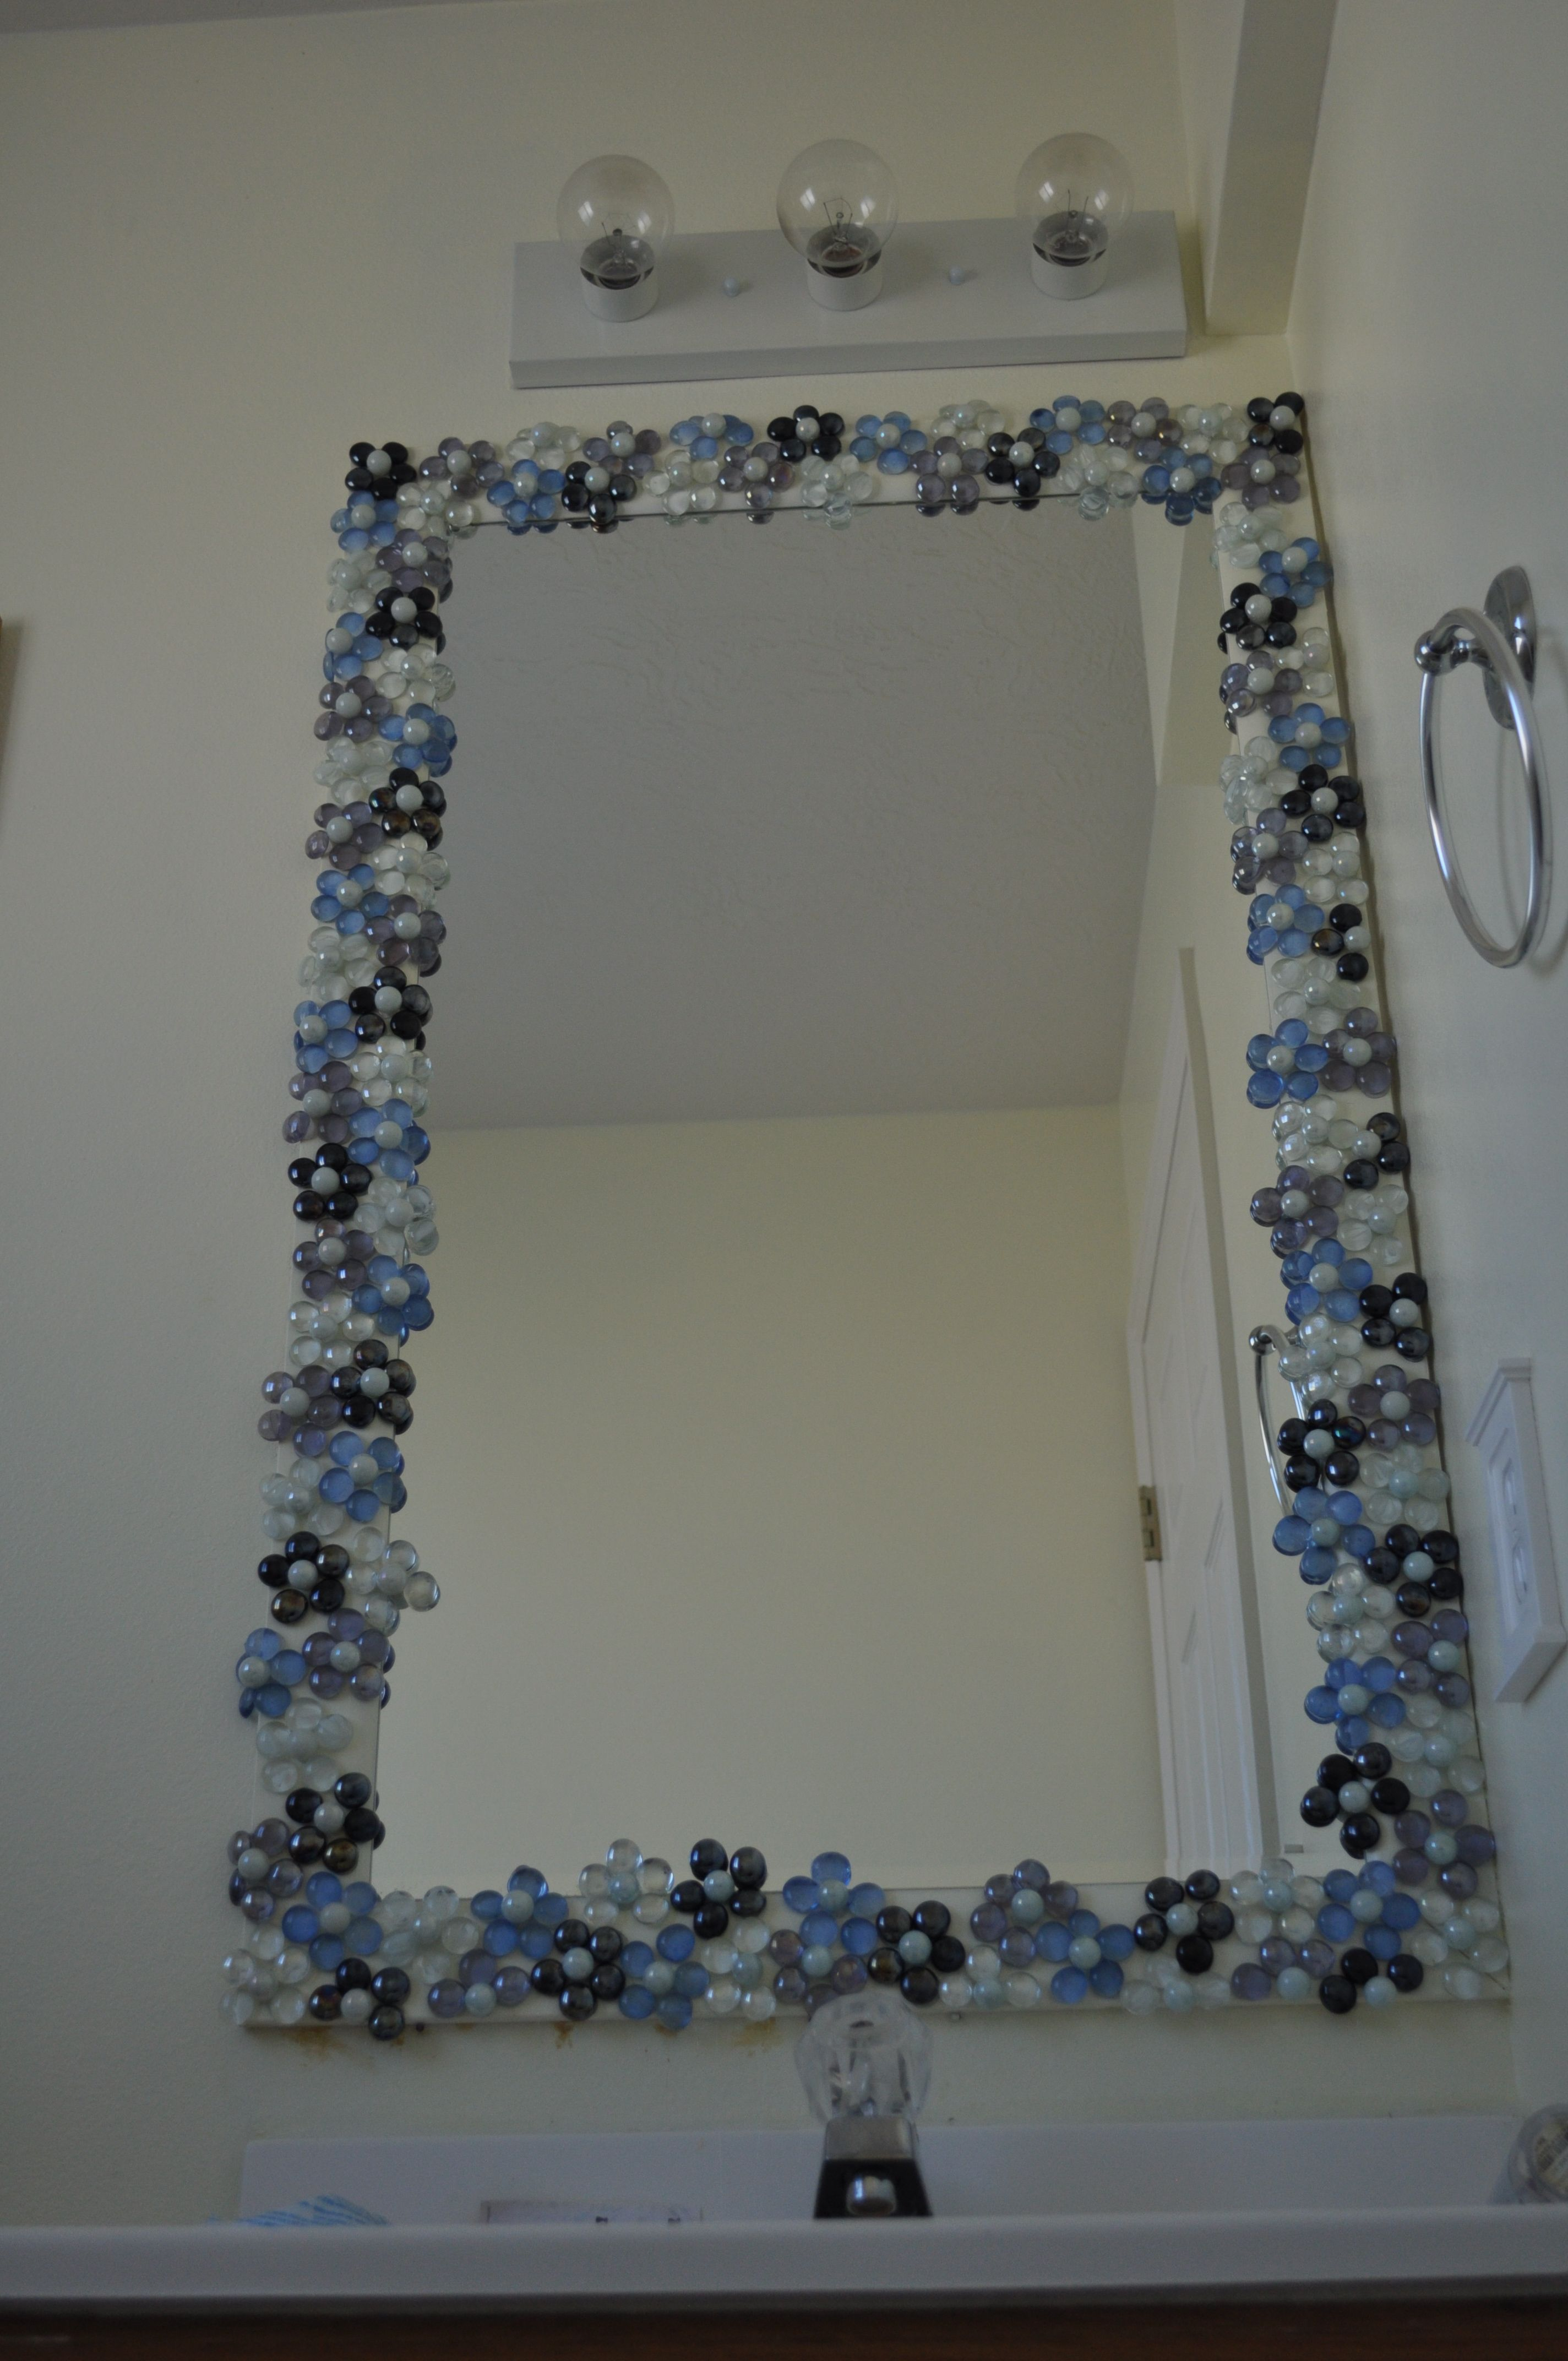 Stone Framed Bathroom Mirrors Glass Gems With Pearl Marble Centers To Dress Up A